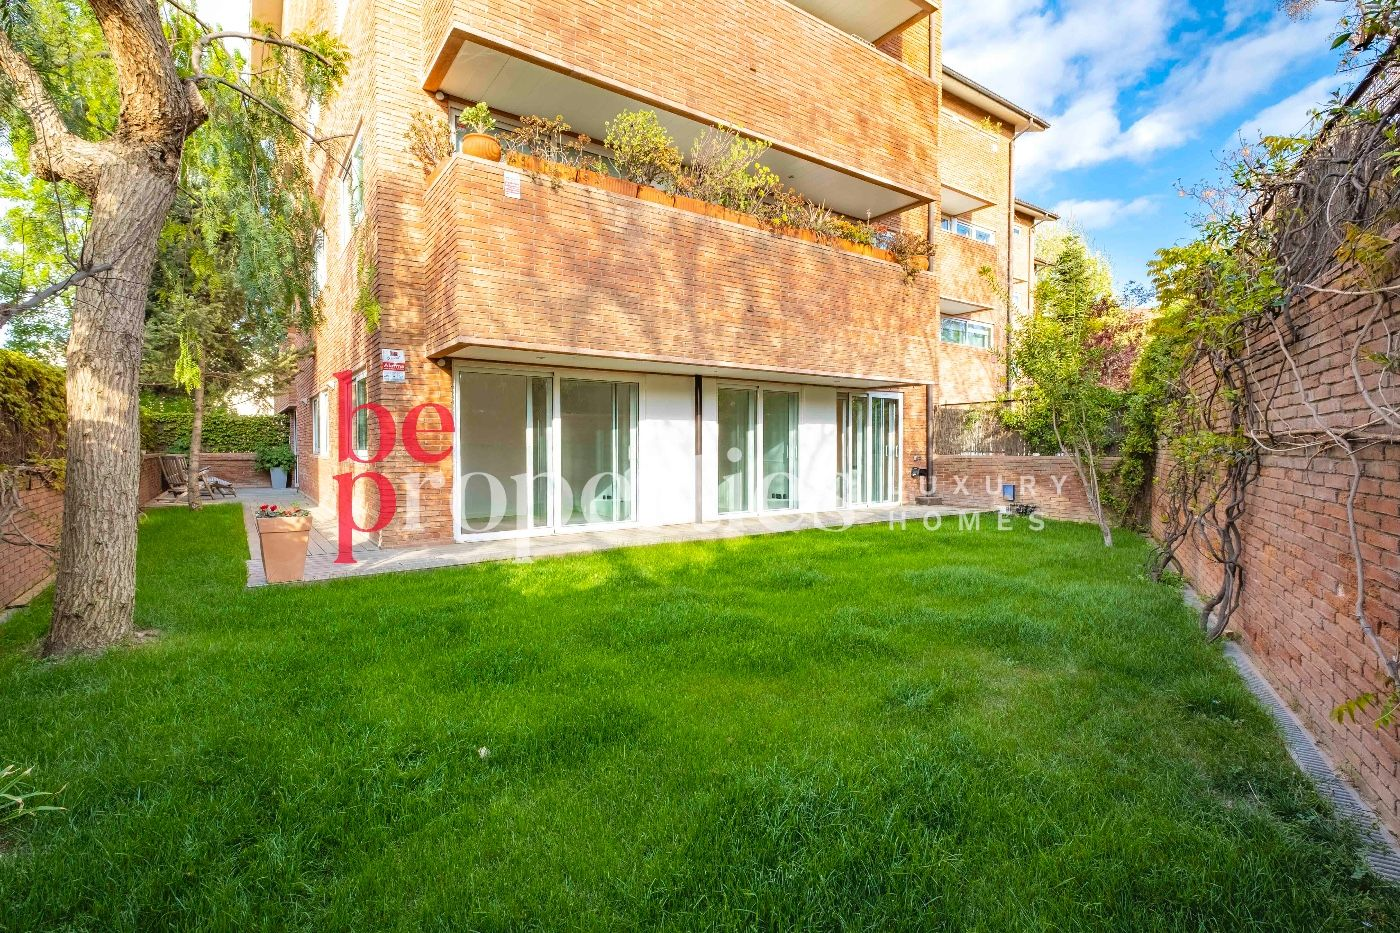 Rent Ground floor in Carretera vallvidrera, 75. Planta baja con jardín y terraza